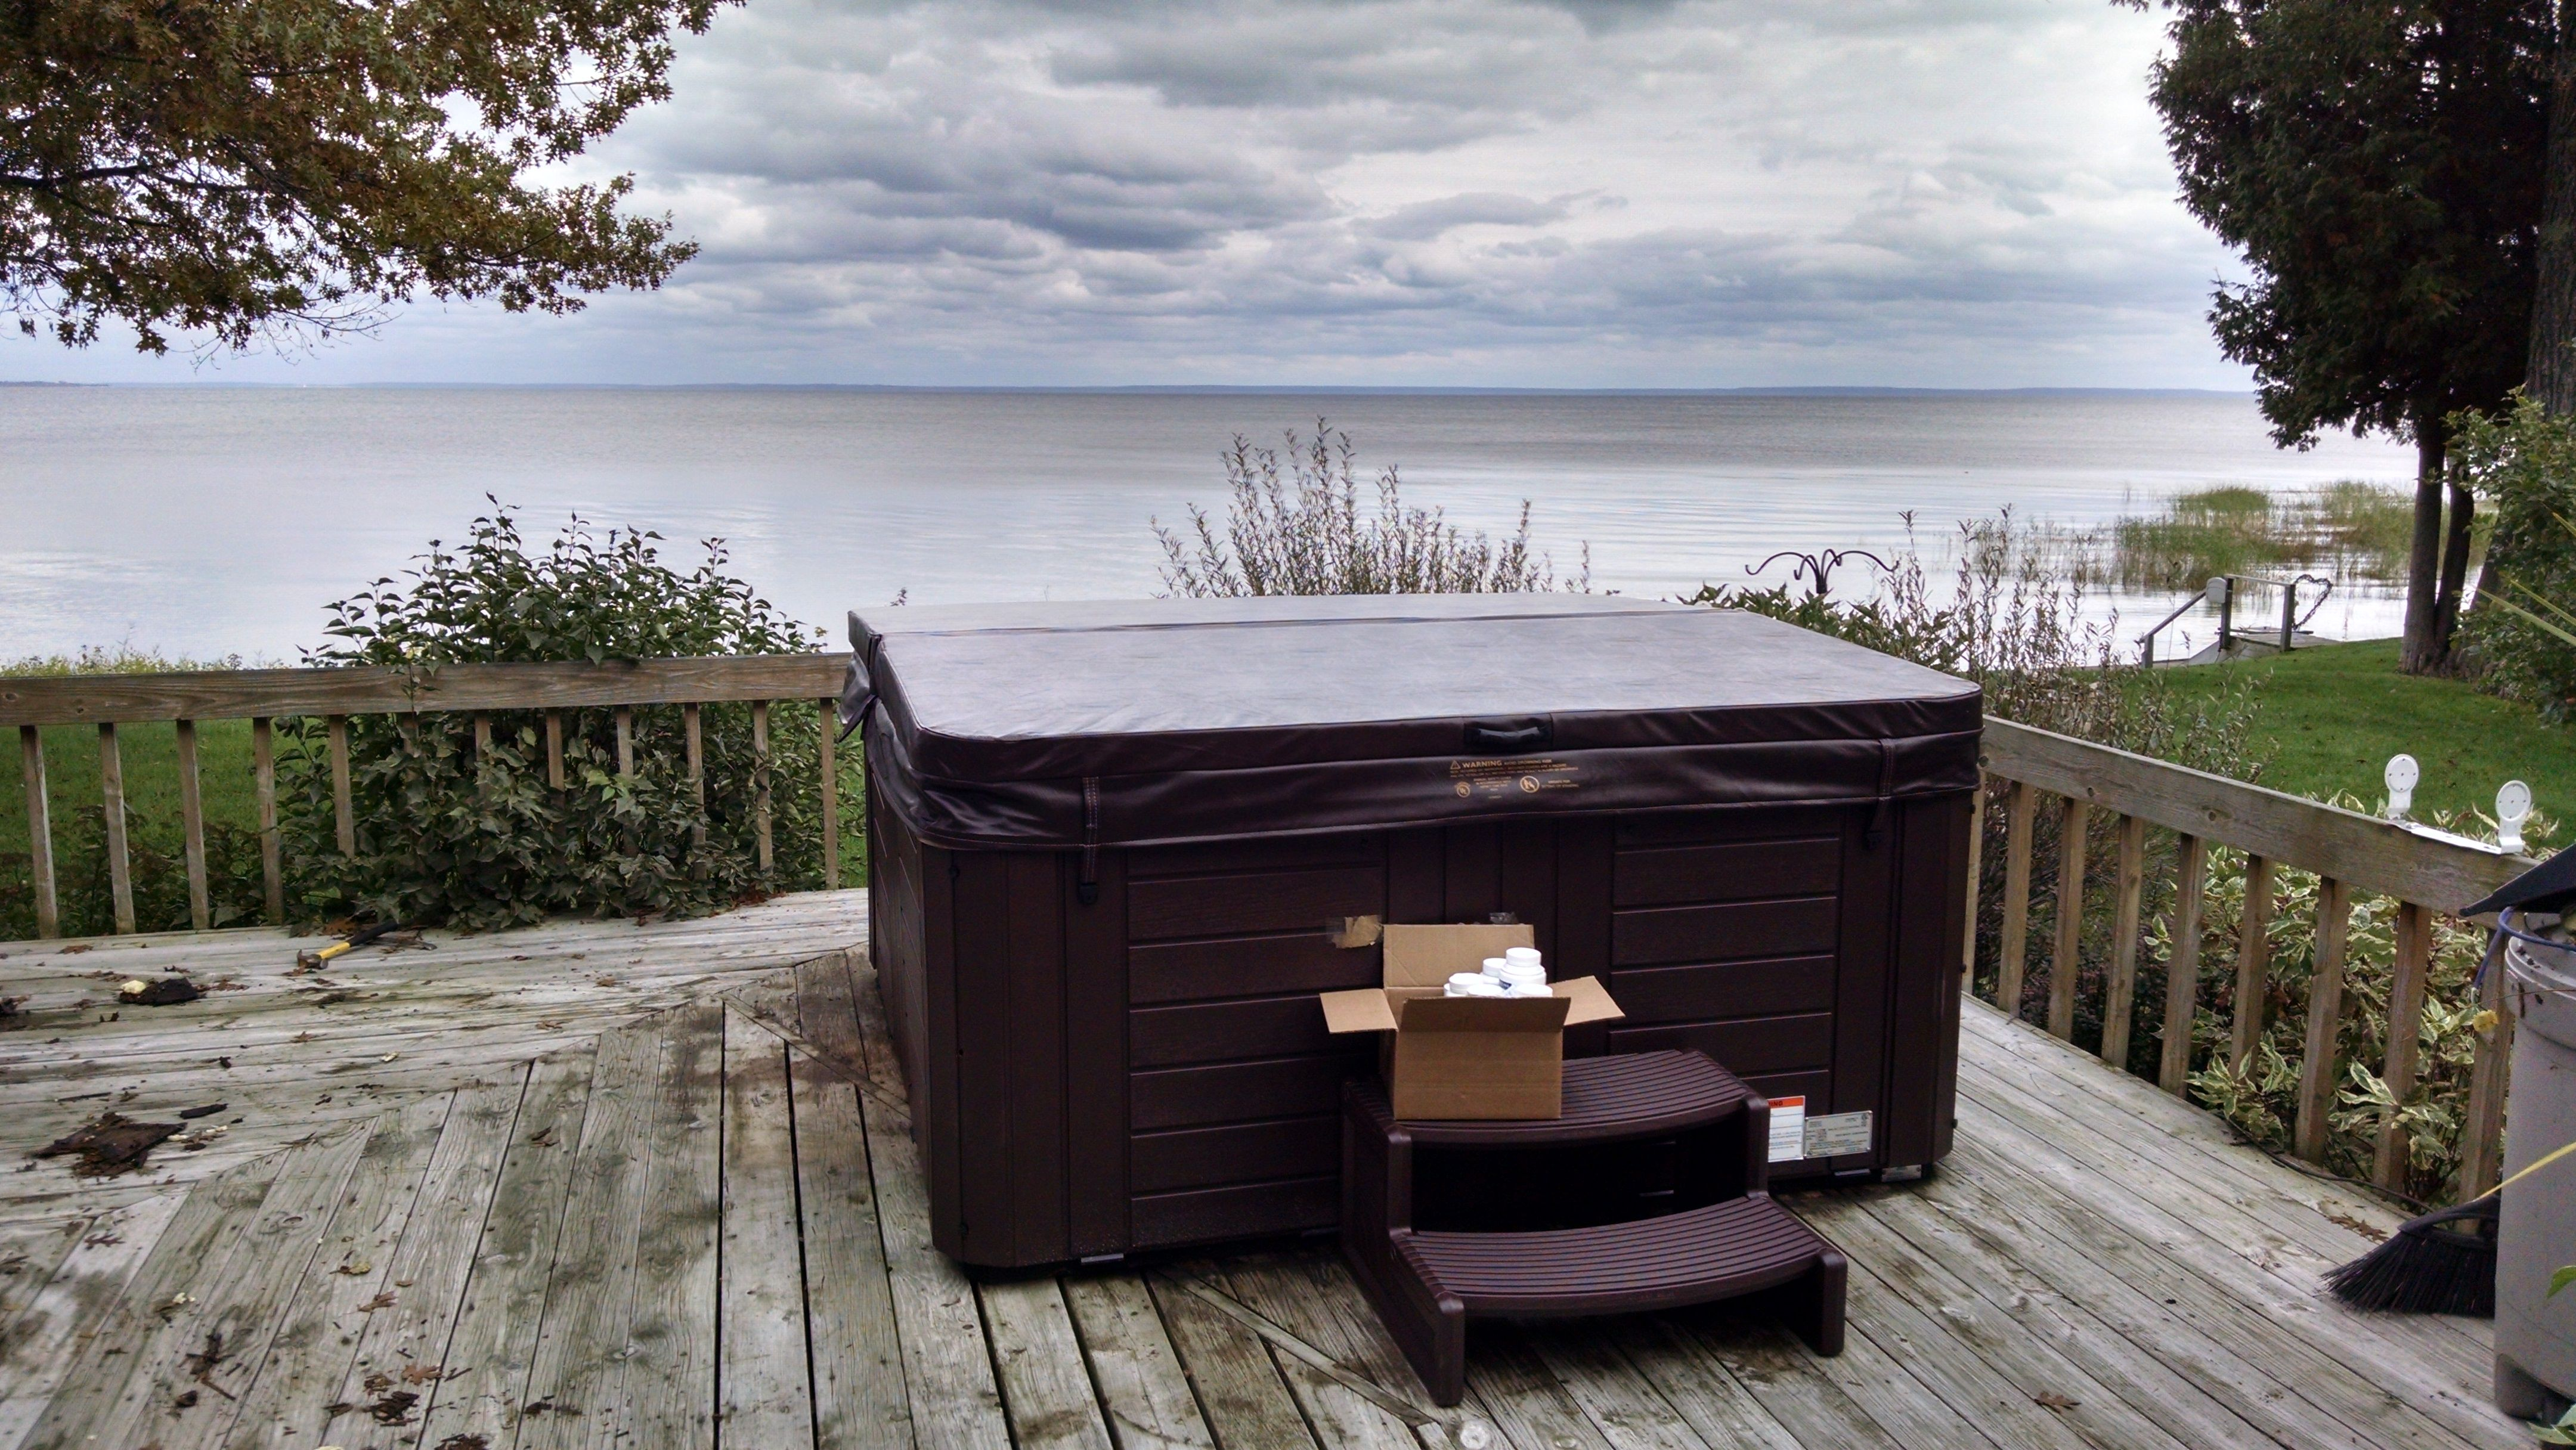 Here Is A Master Spas Healthy Living Hot Tub With